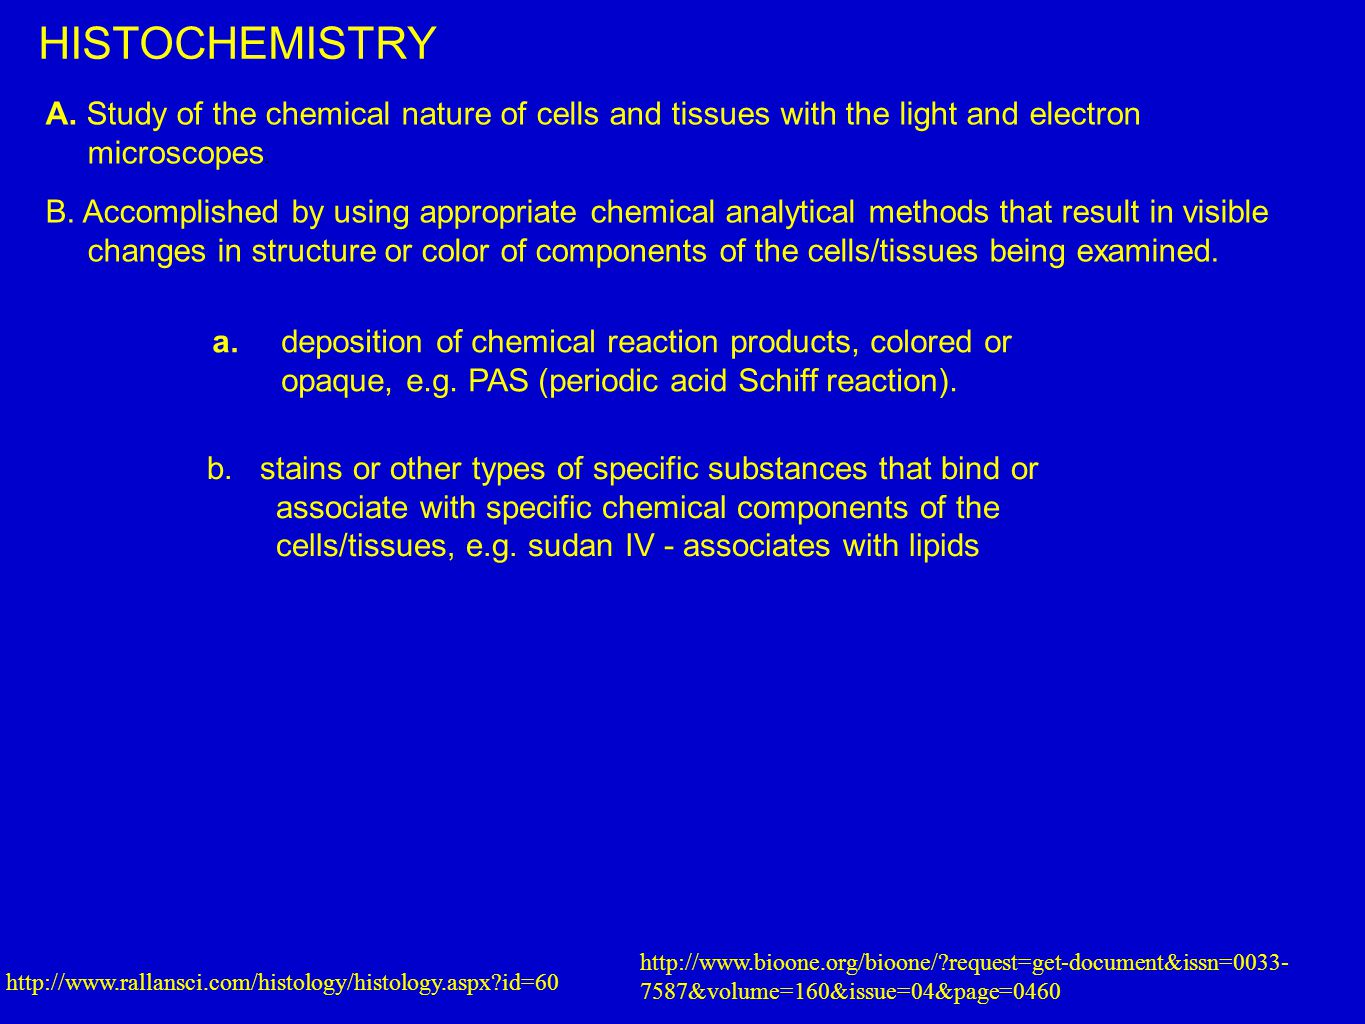 A. Study of the chemical nature of cells and tissues with the light and electron microscopes.